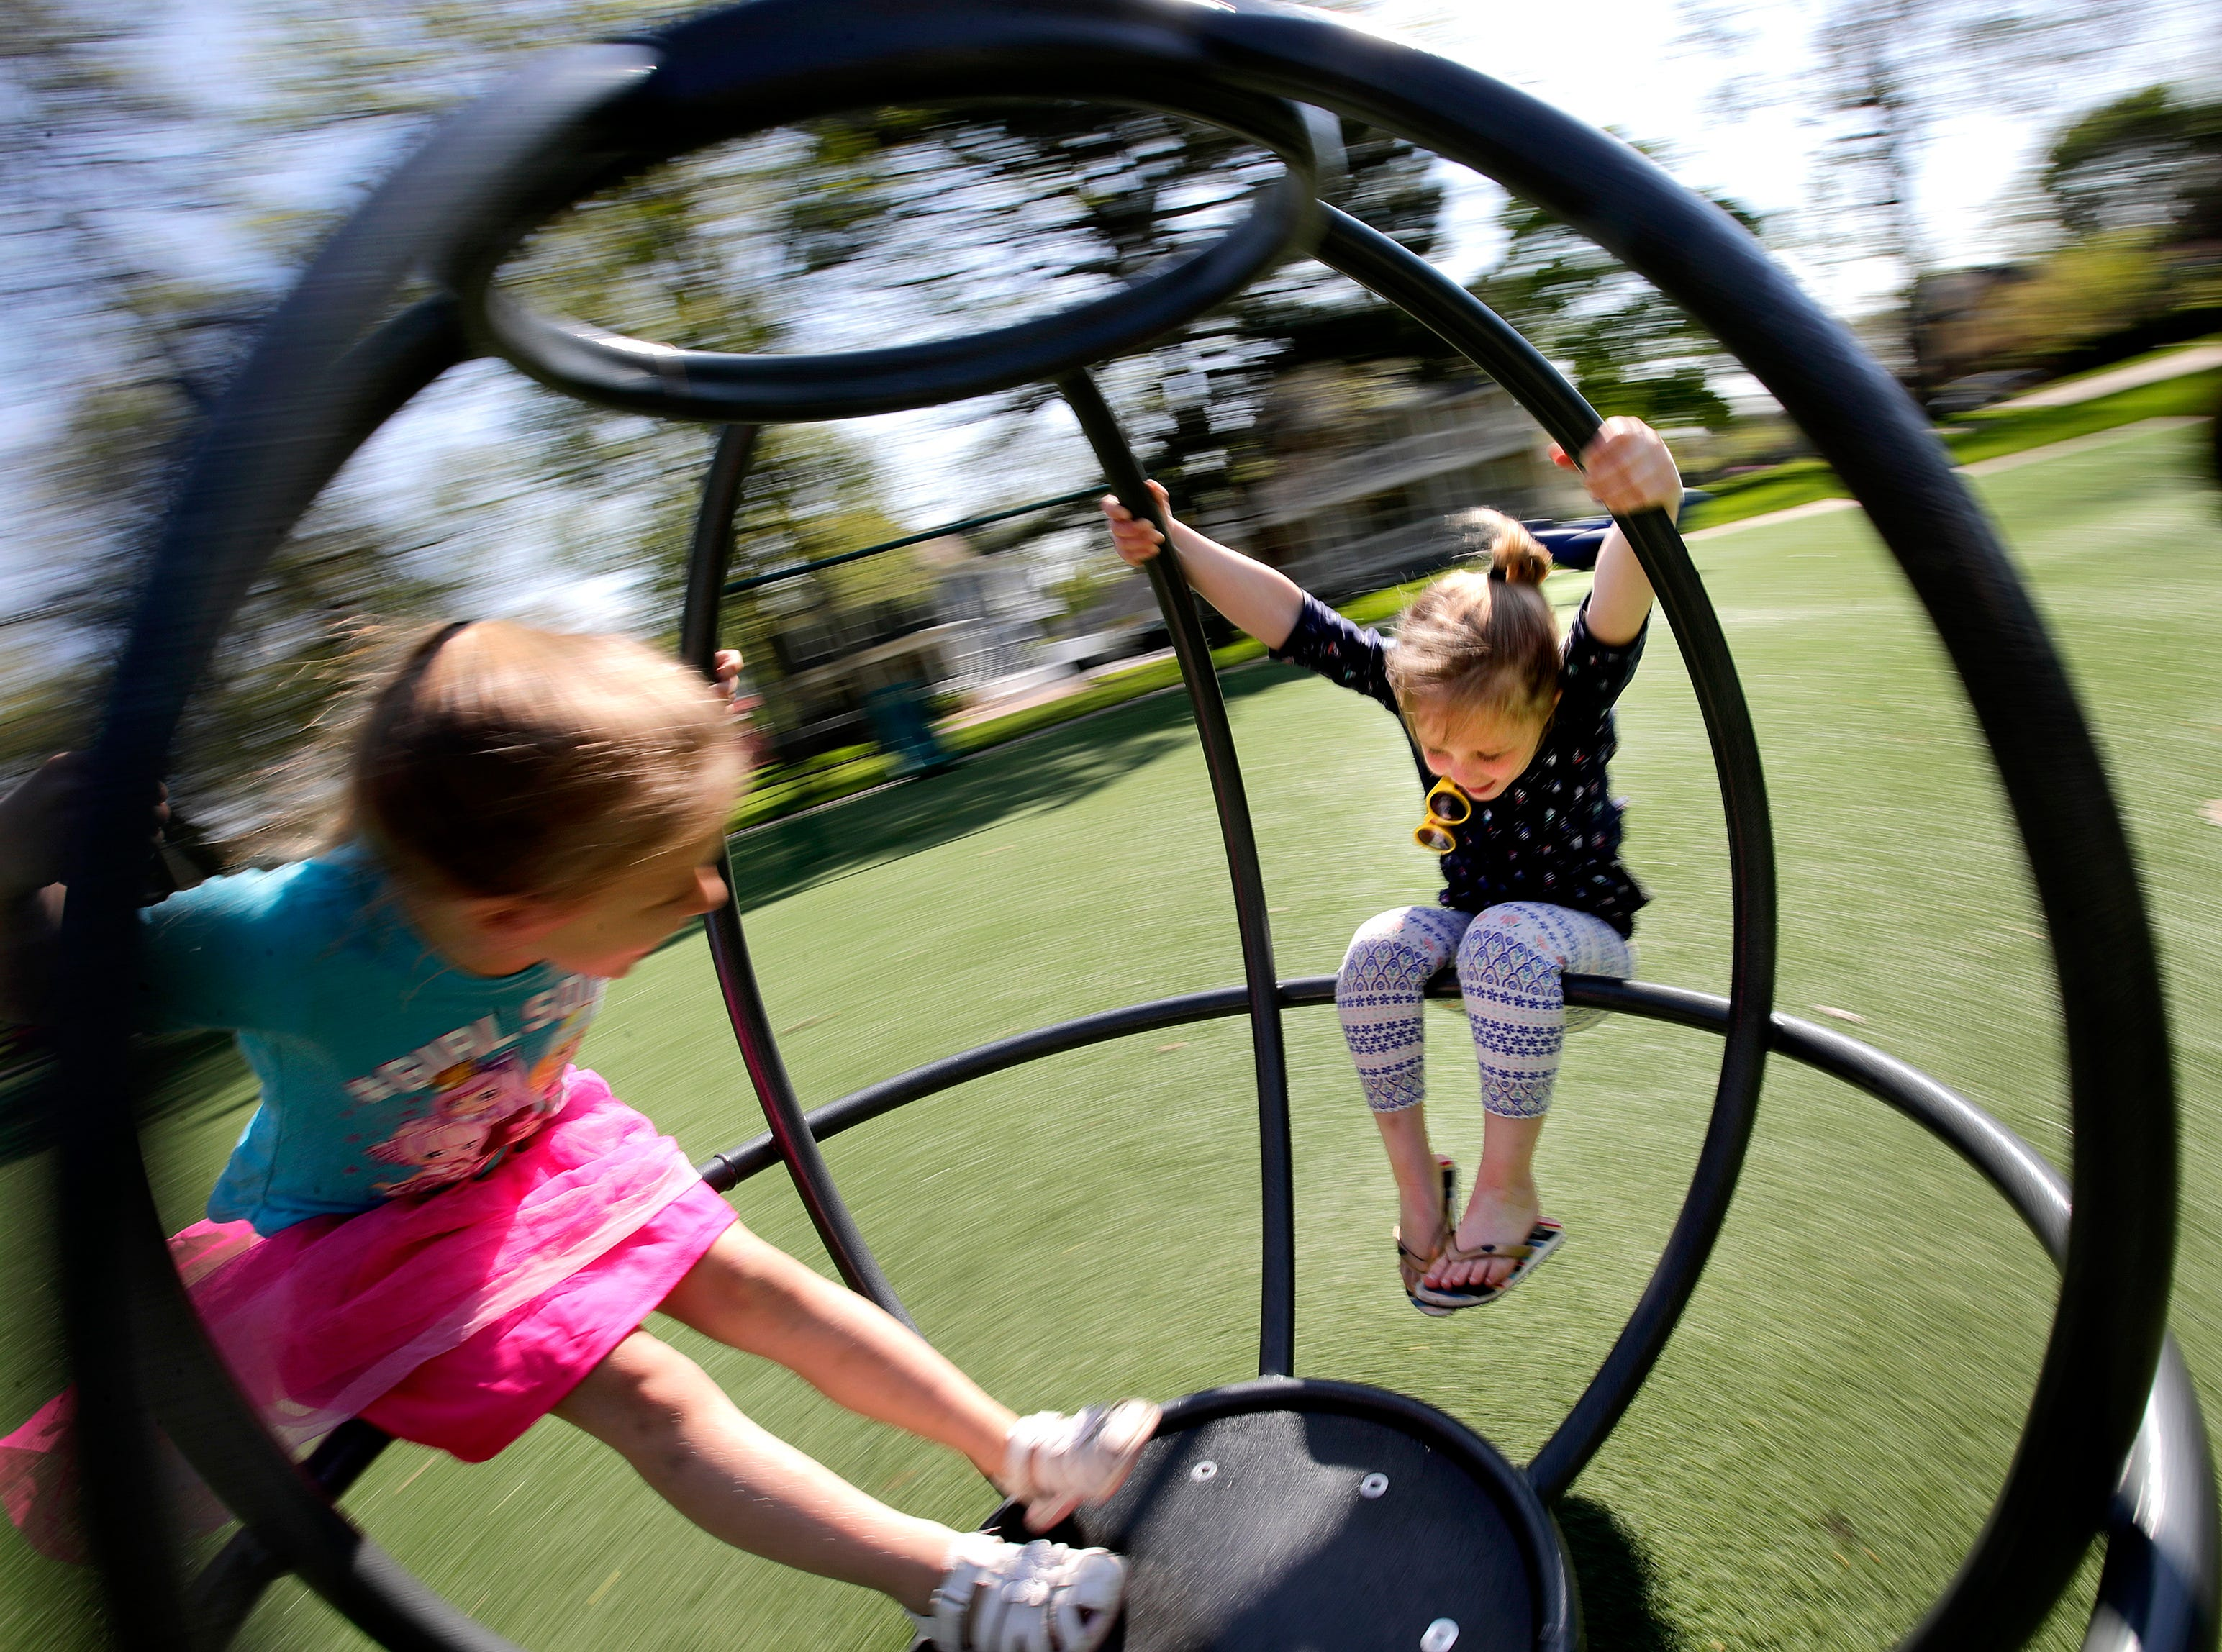 Lydia Probst, 4, spins on the city park merry-go-round with her best friend Mary-Anne Milis, 4, Tuesday, May 15, 2018, in Appleton, Wis. 